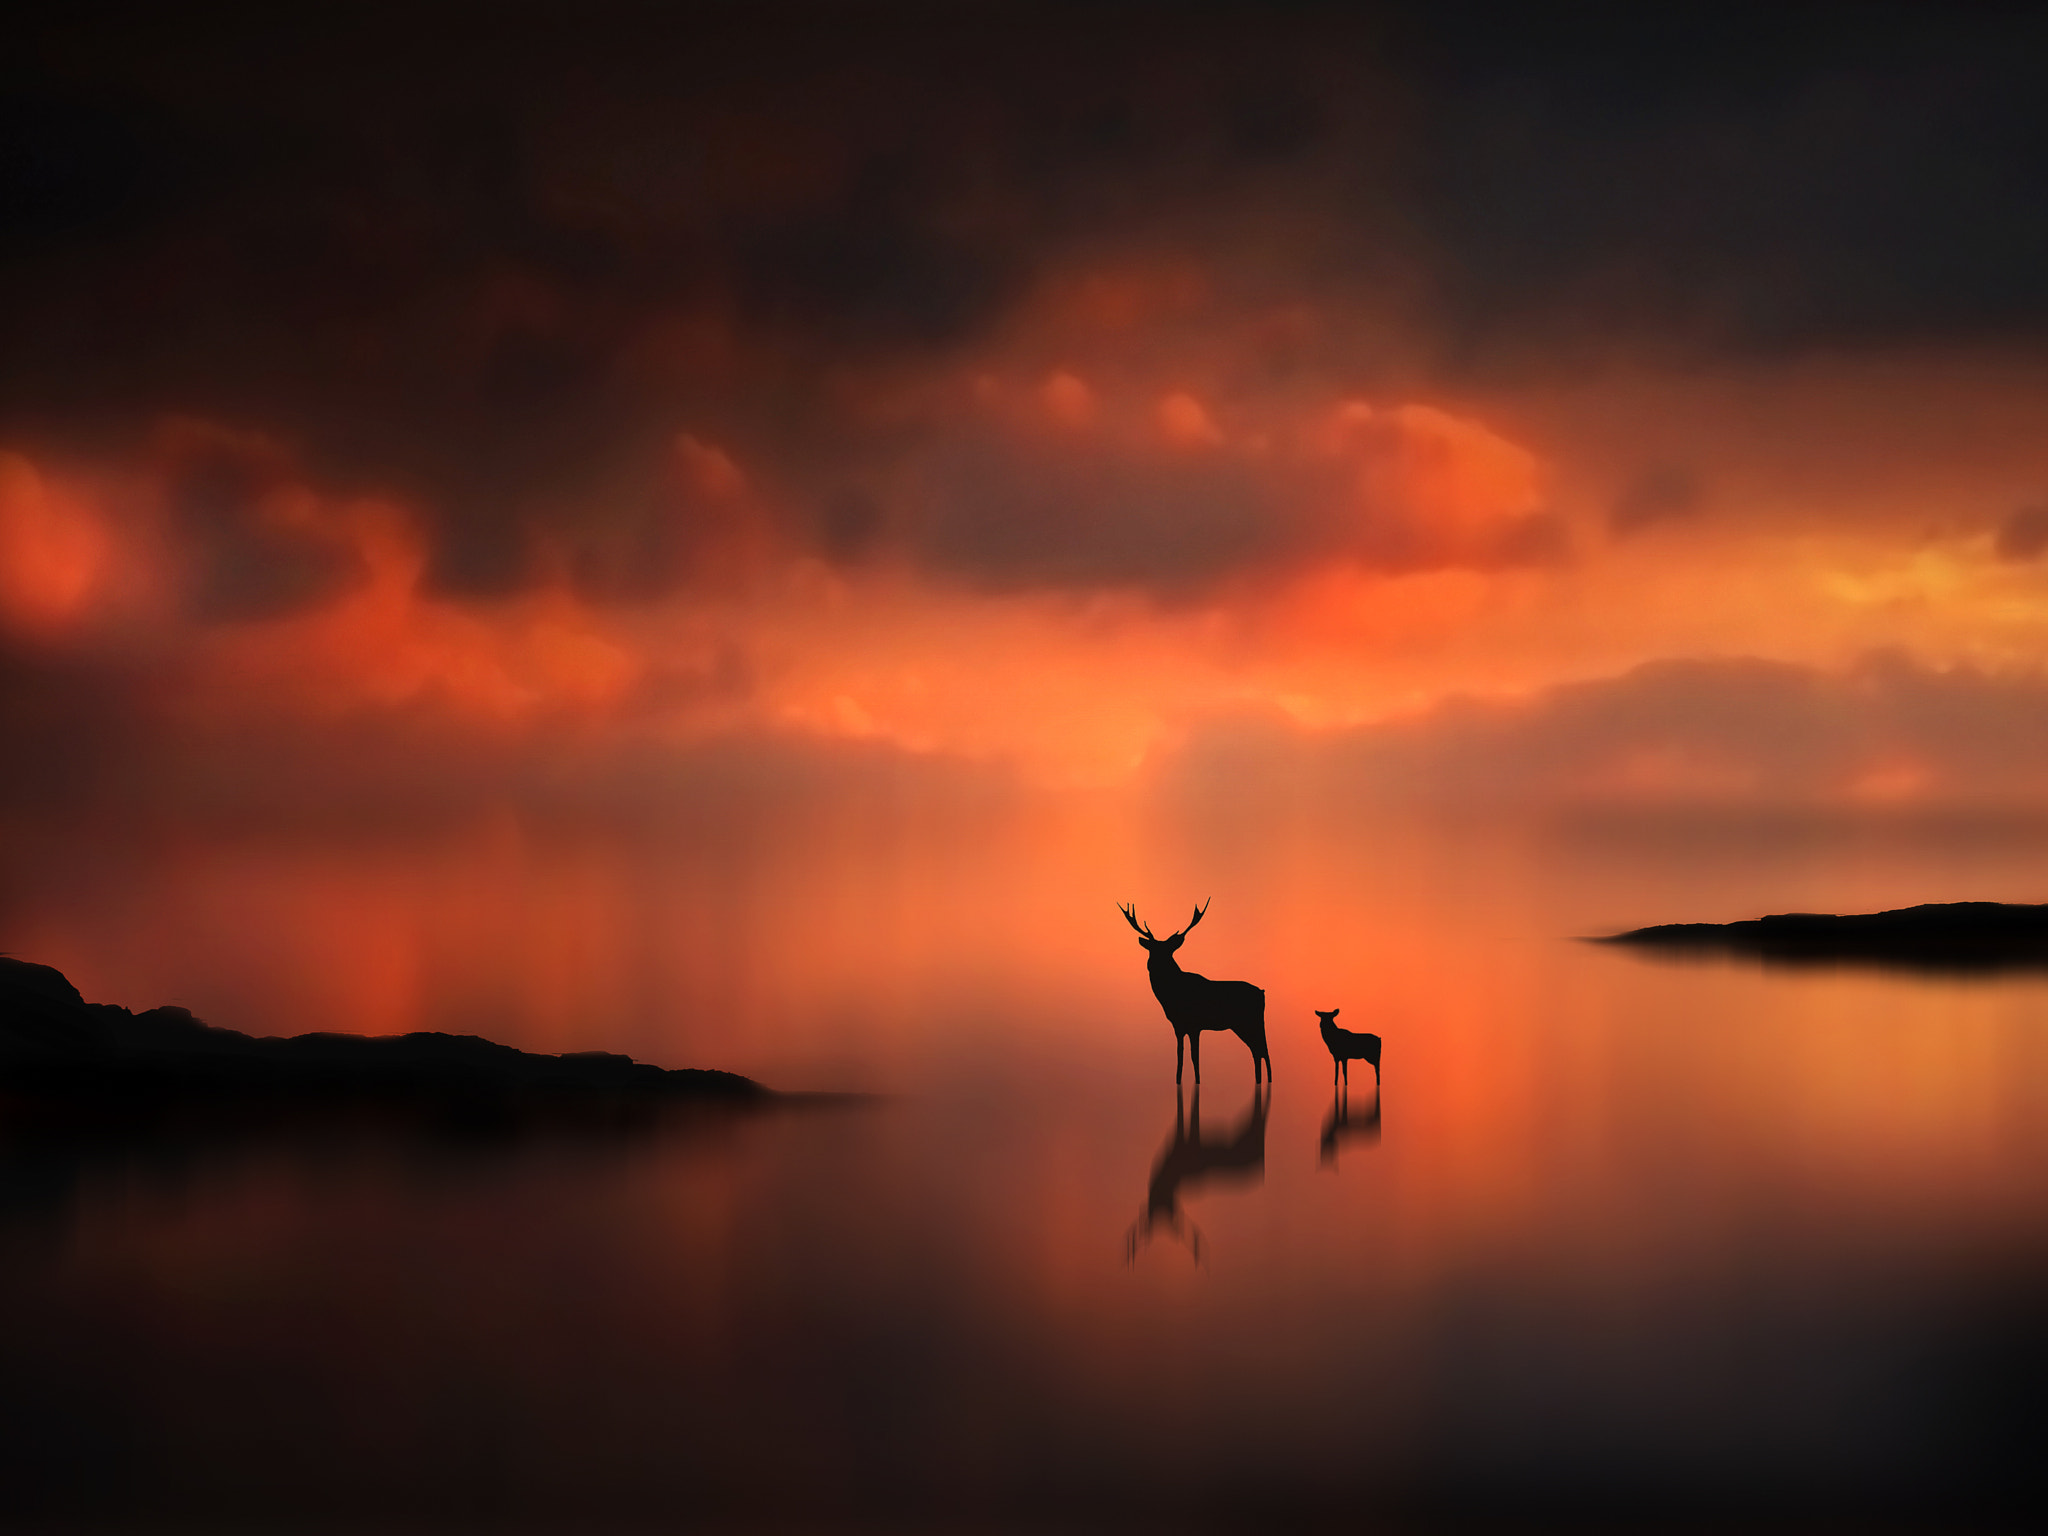 Photograph The Deer at Sunset by Jenny Woodward on 500px